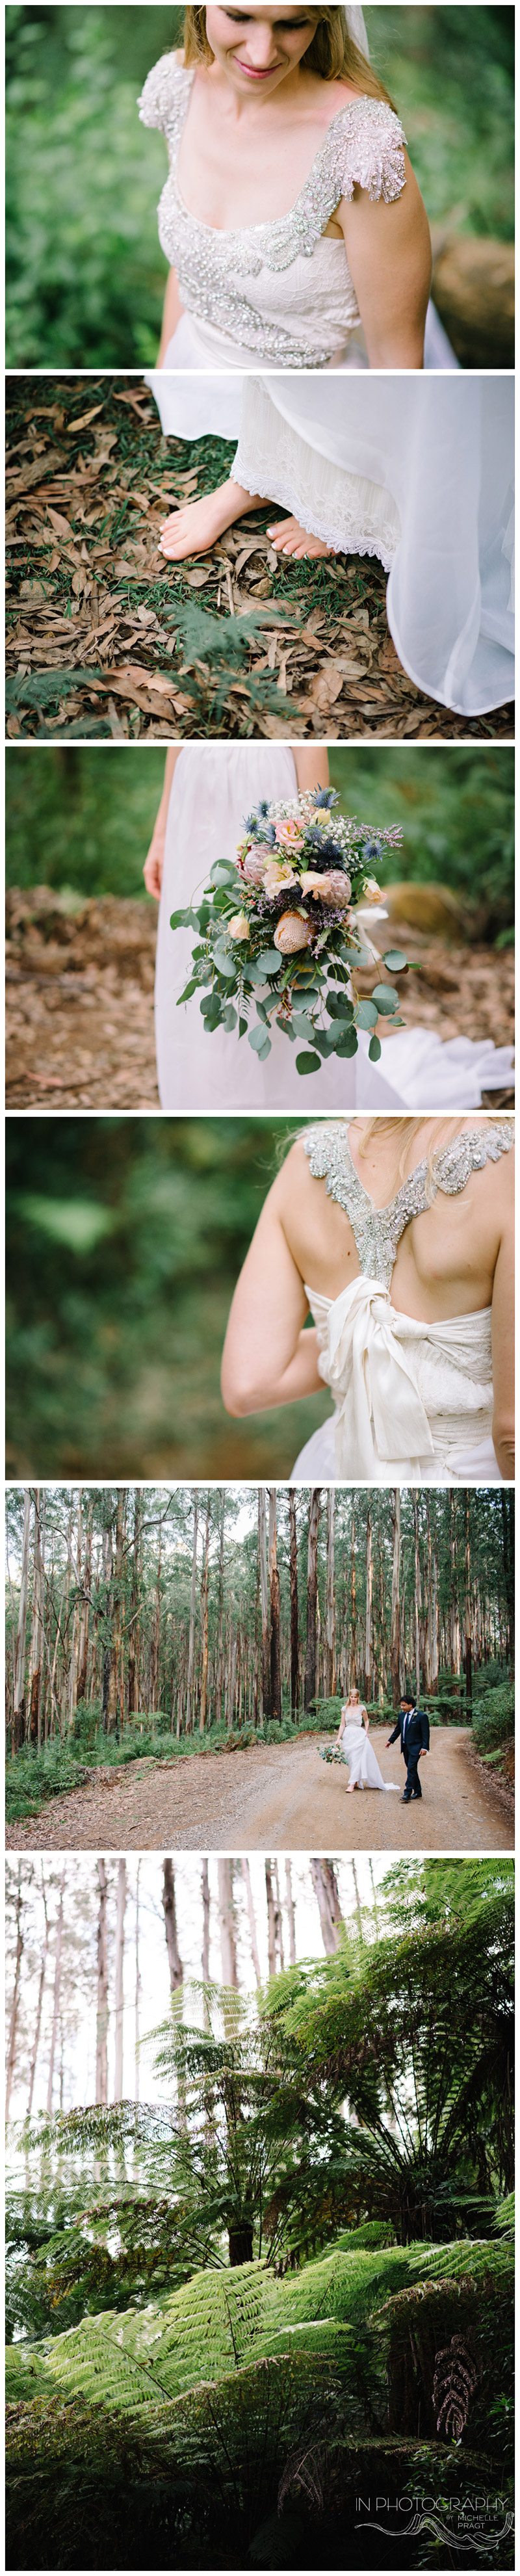 Yarra Valley ranges wedding